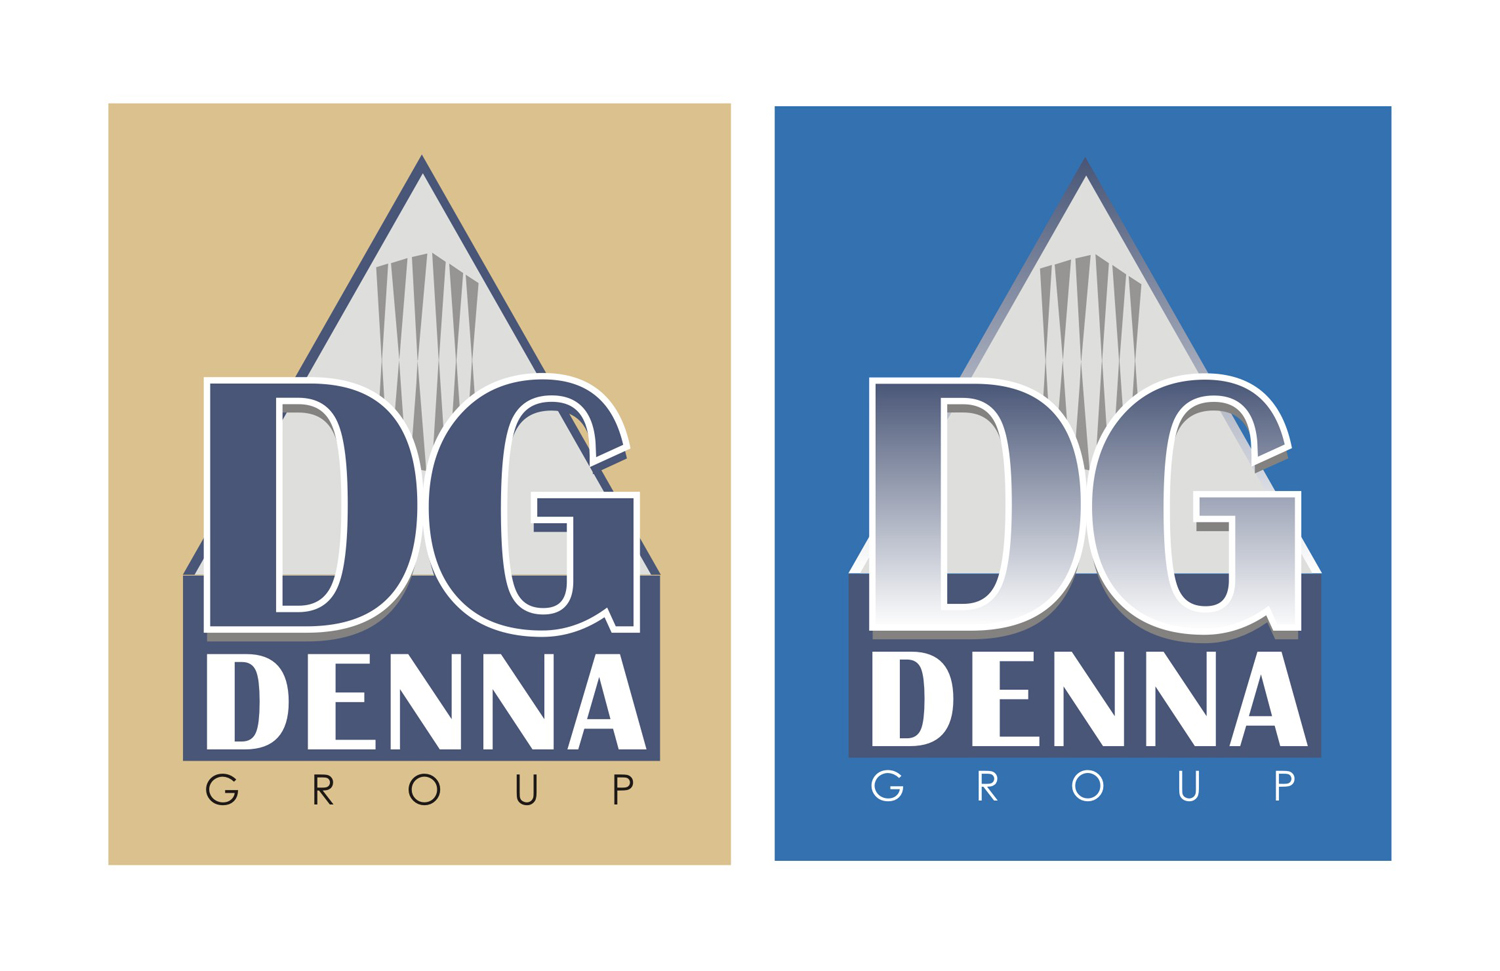 Logo Design by Mahida Kirit Chandrasinh - Entry No. 99 in the Logo Design Contest Denna Group Logo Design.